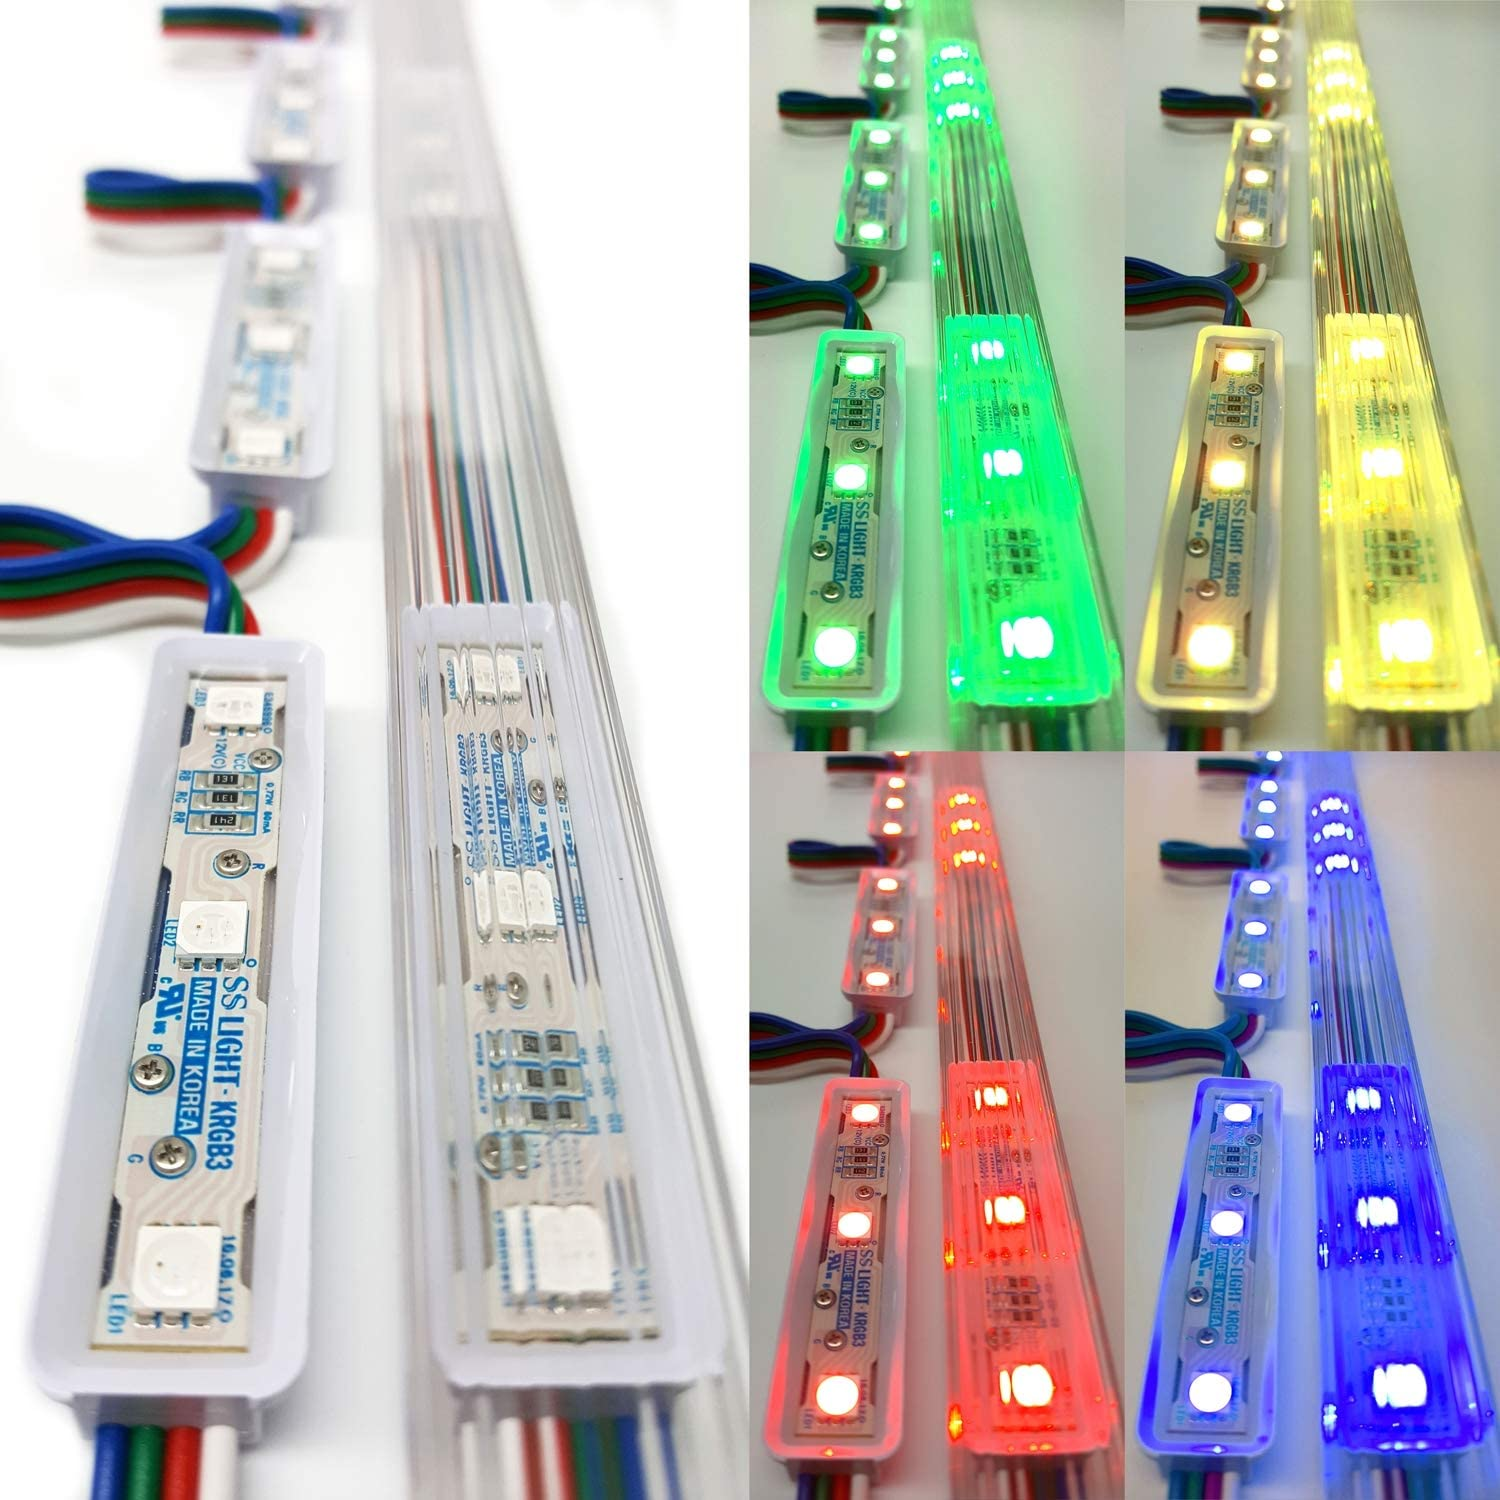 Luxdiyled Storefront Window LED Lights Kit with Predective Tracks (Multi-colord 25ft)